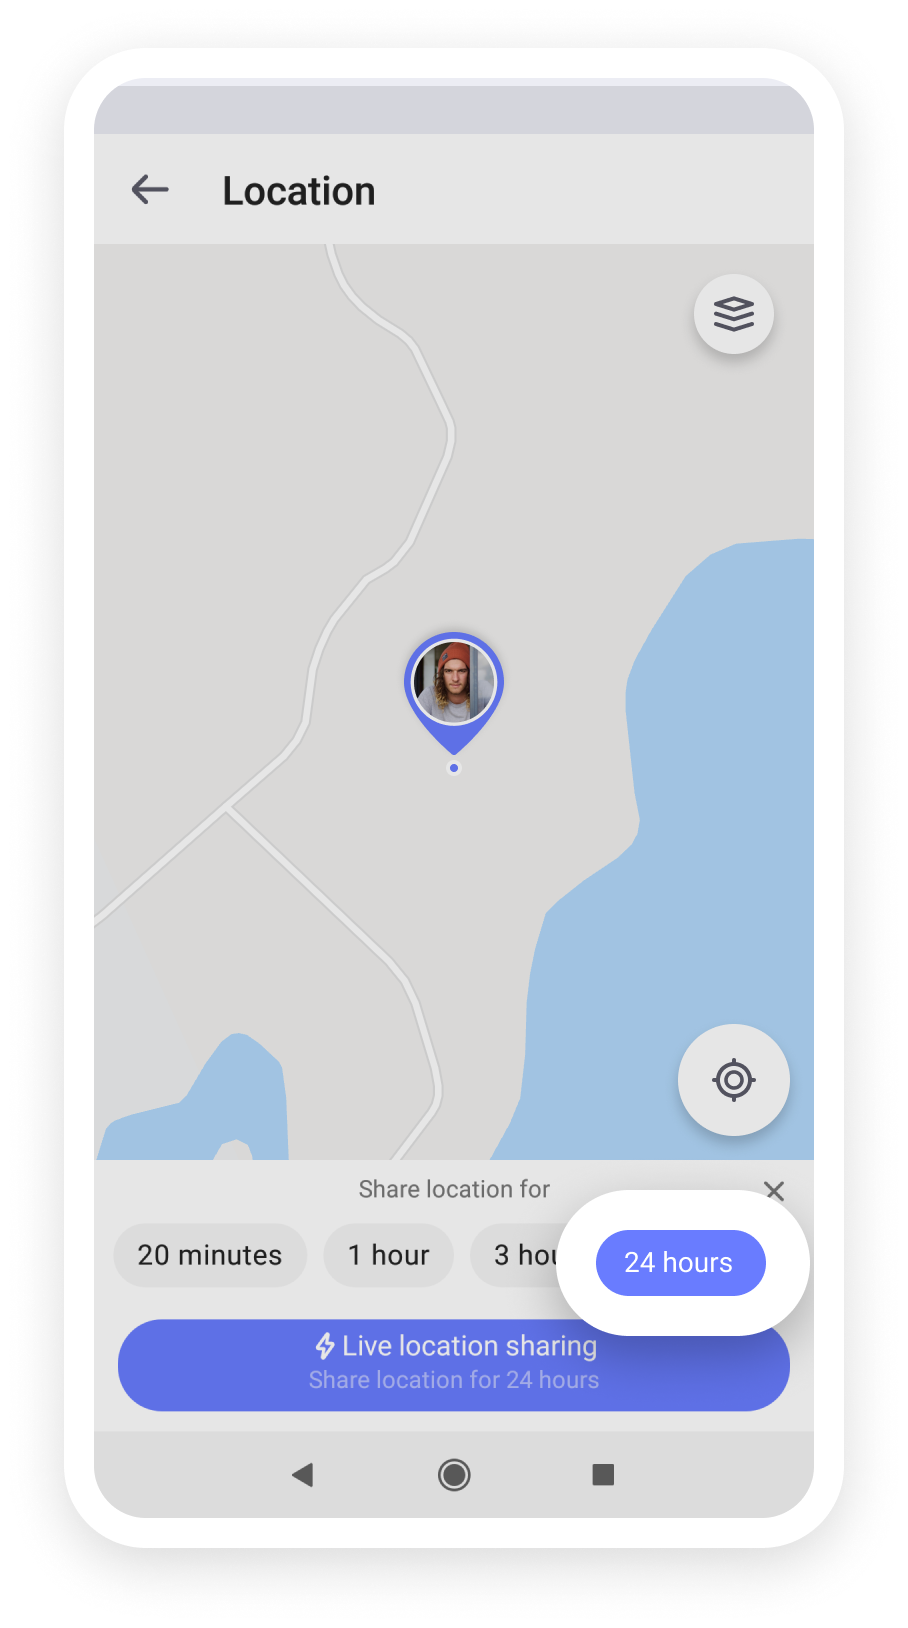 Location sharing for 24 hours